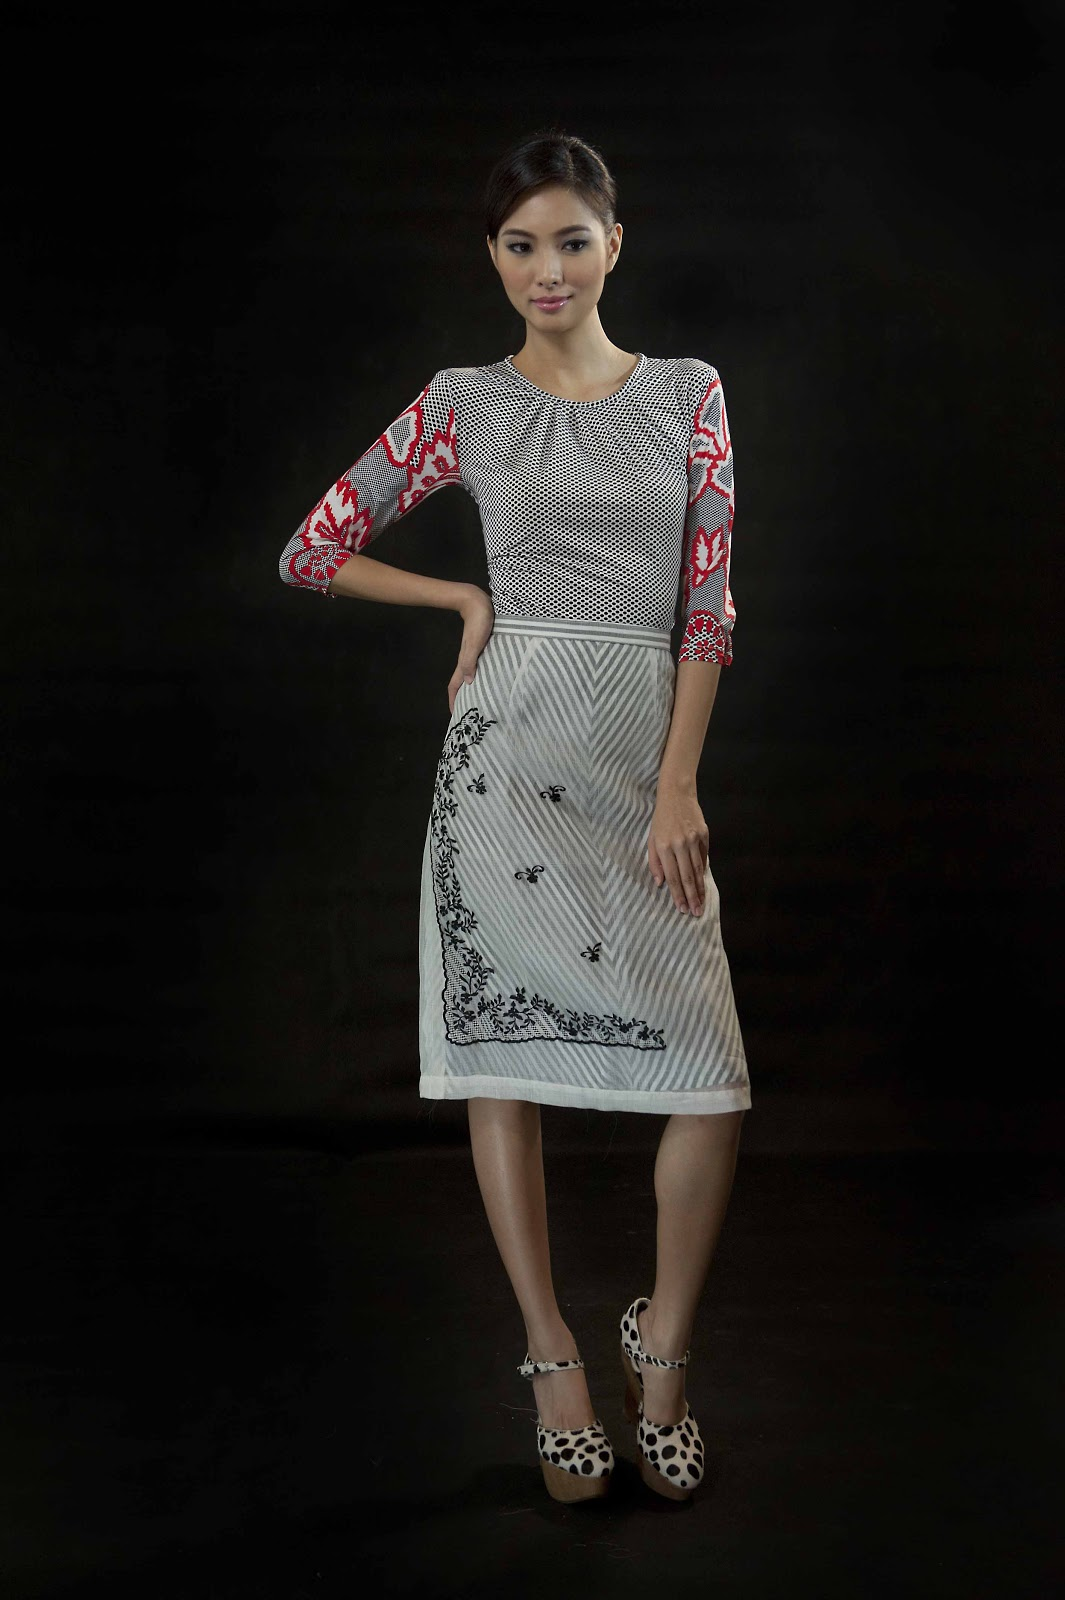 Filipiniana Terno Dress http://www.manilafashionobserver.com/2012/12/modern-filipiniana-at-religioso.html